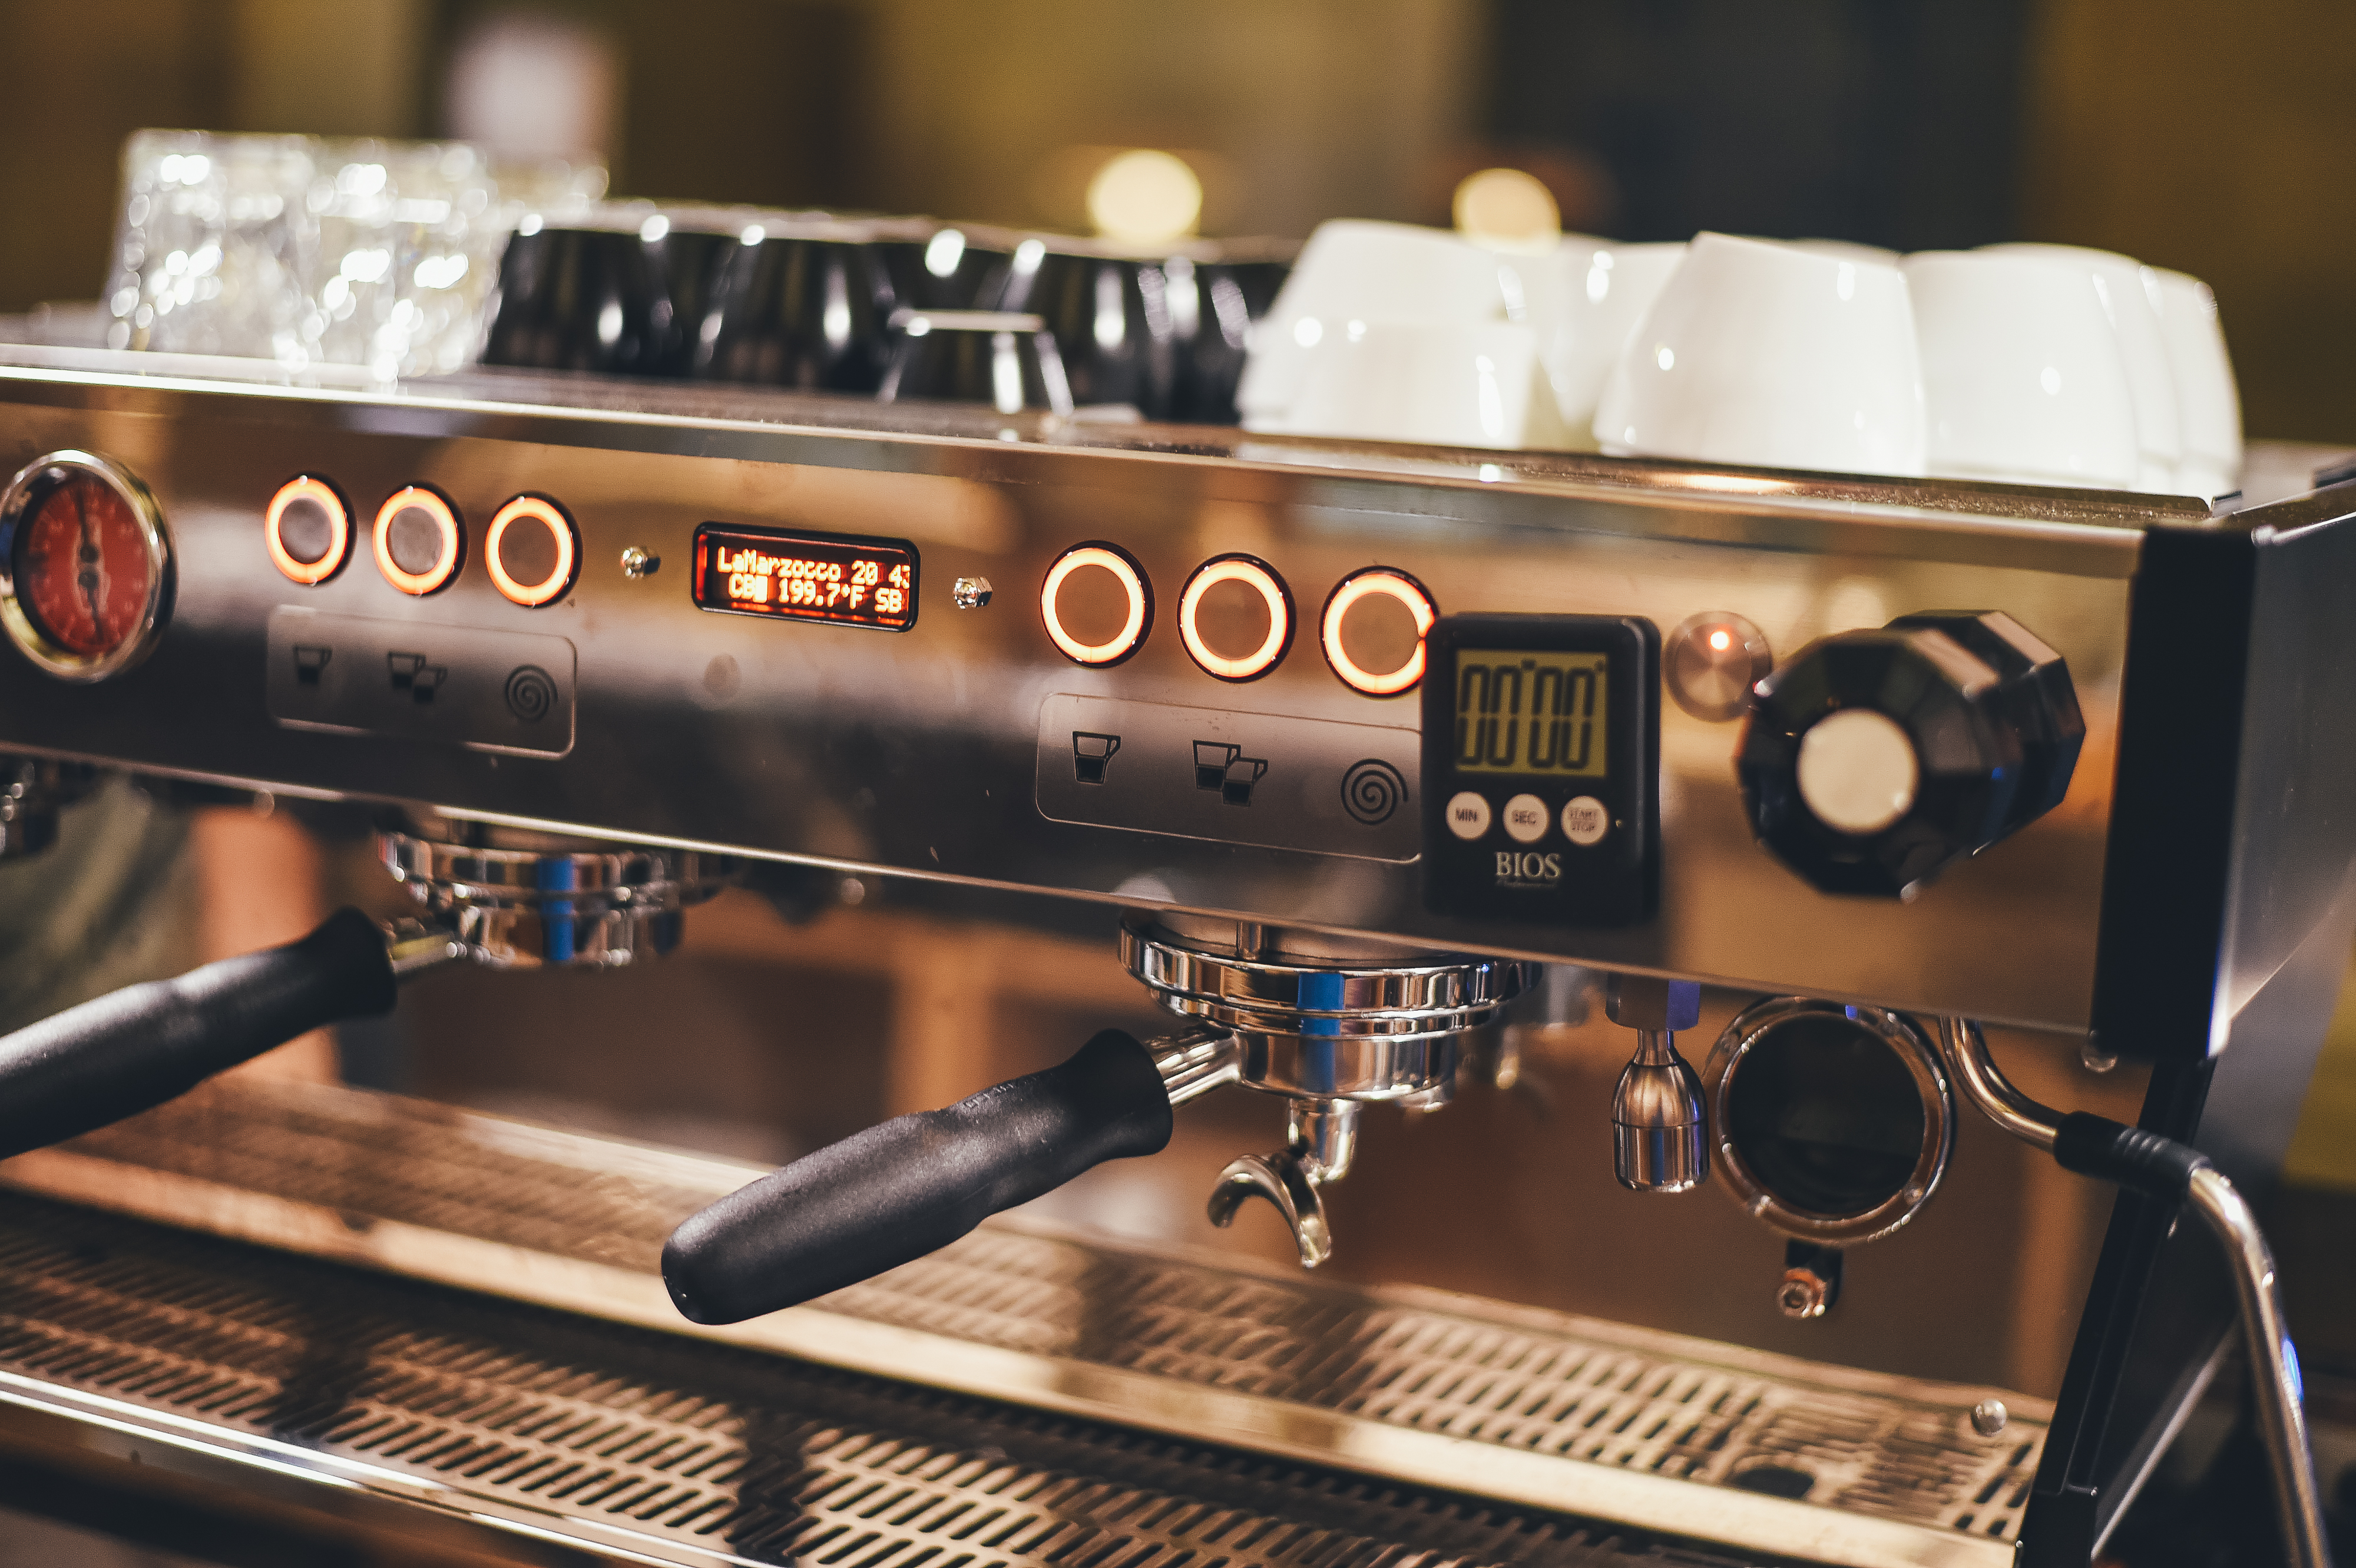 5 Best Coffee Making Machines For Your Coffee Shop